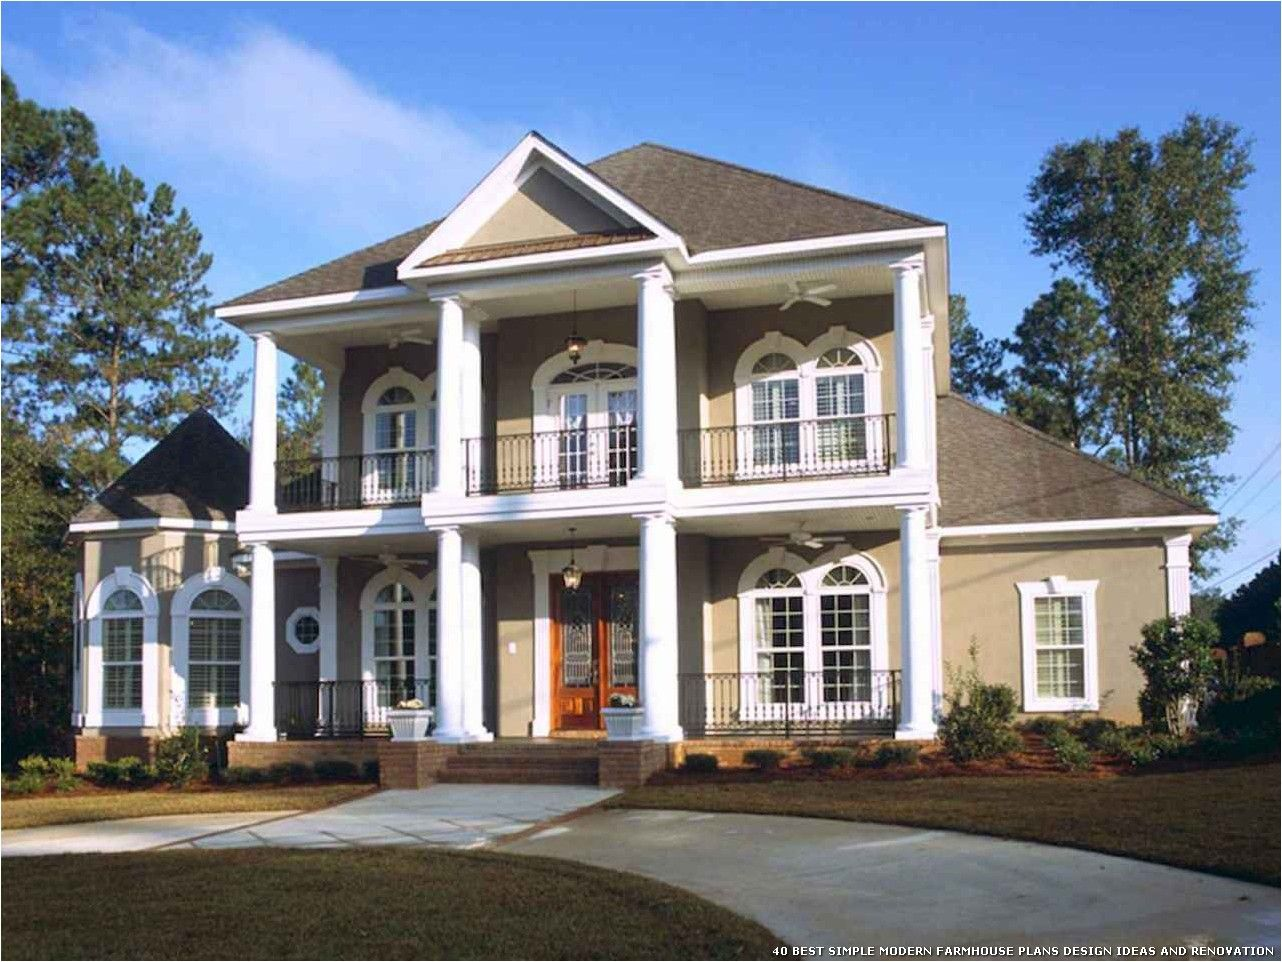 40 Best Simple Modern Farmhouse Plans Design Ideas And Renovation Colonial House Plans Southern House Plans Modern Farmhouse Plans